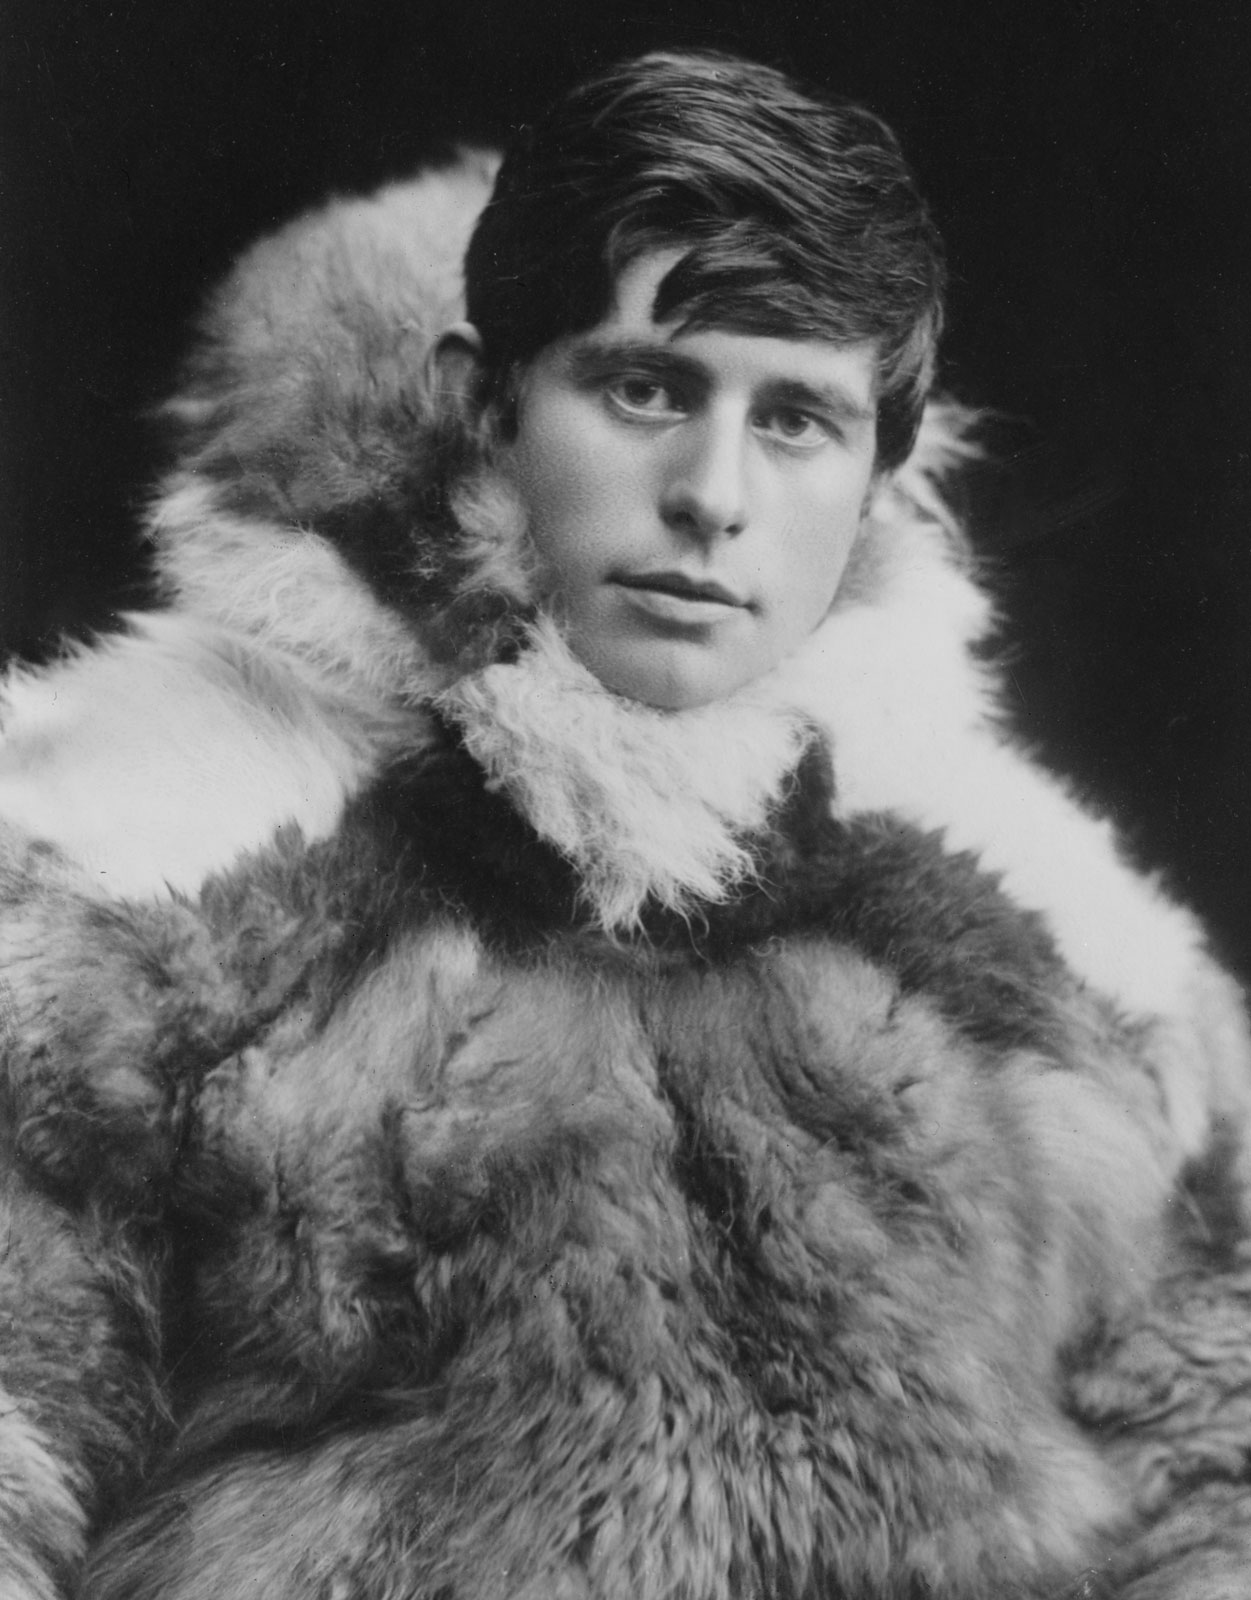 Black and white photo of a young Knud Rasmussen in furs